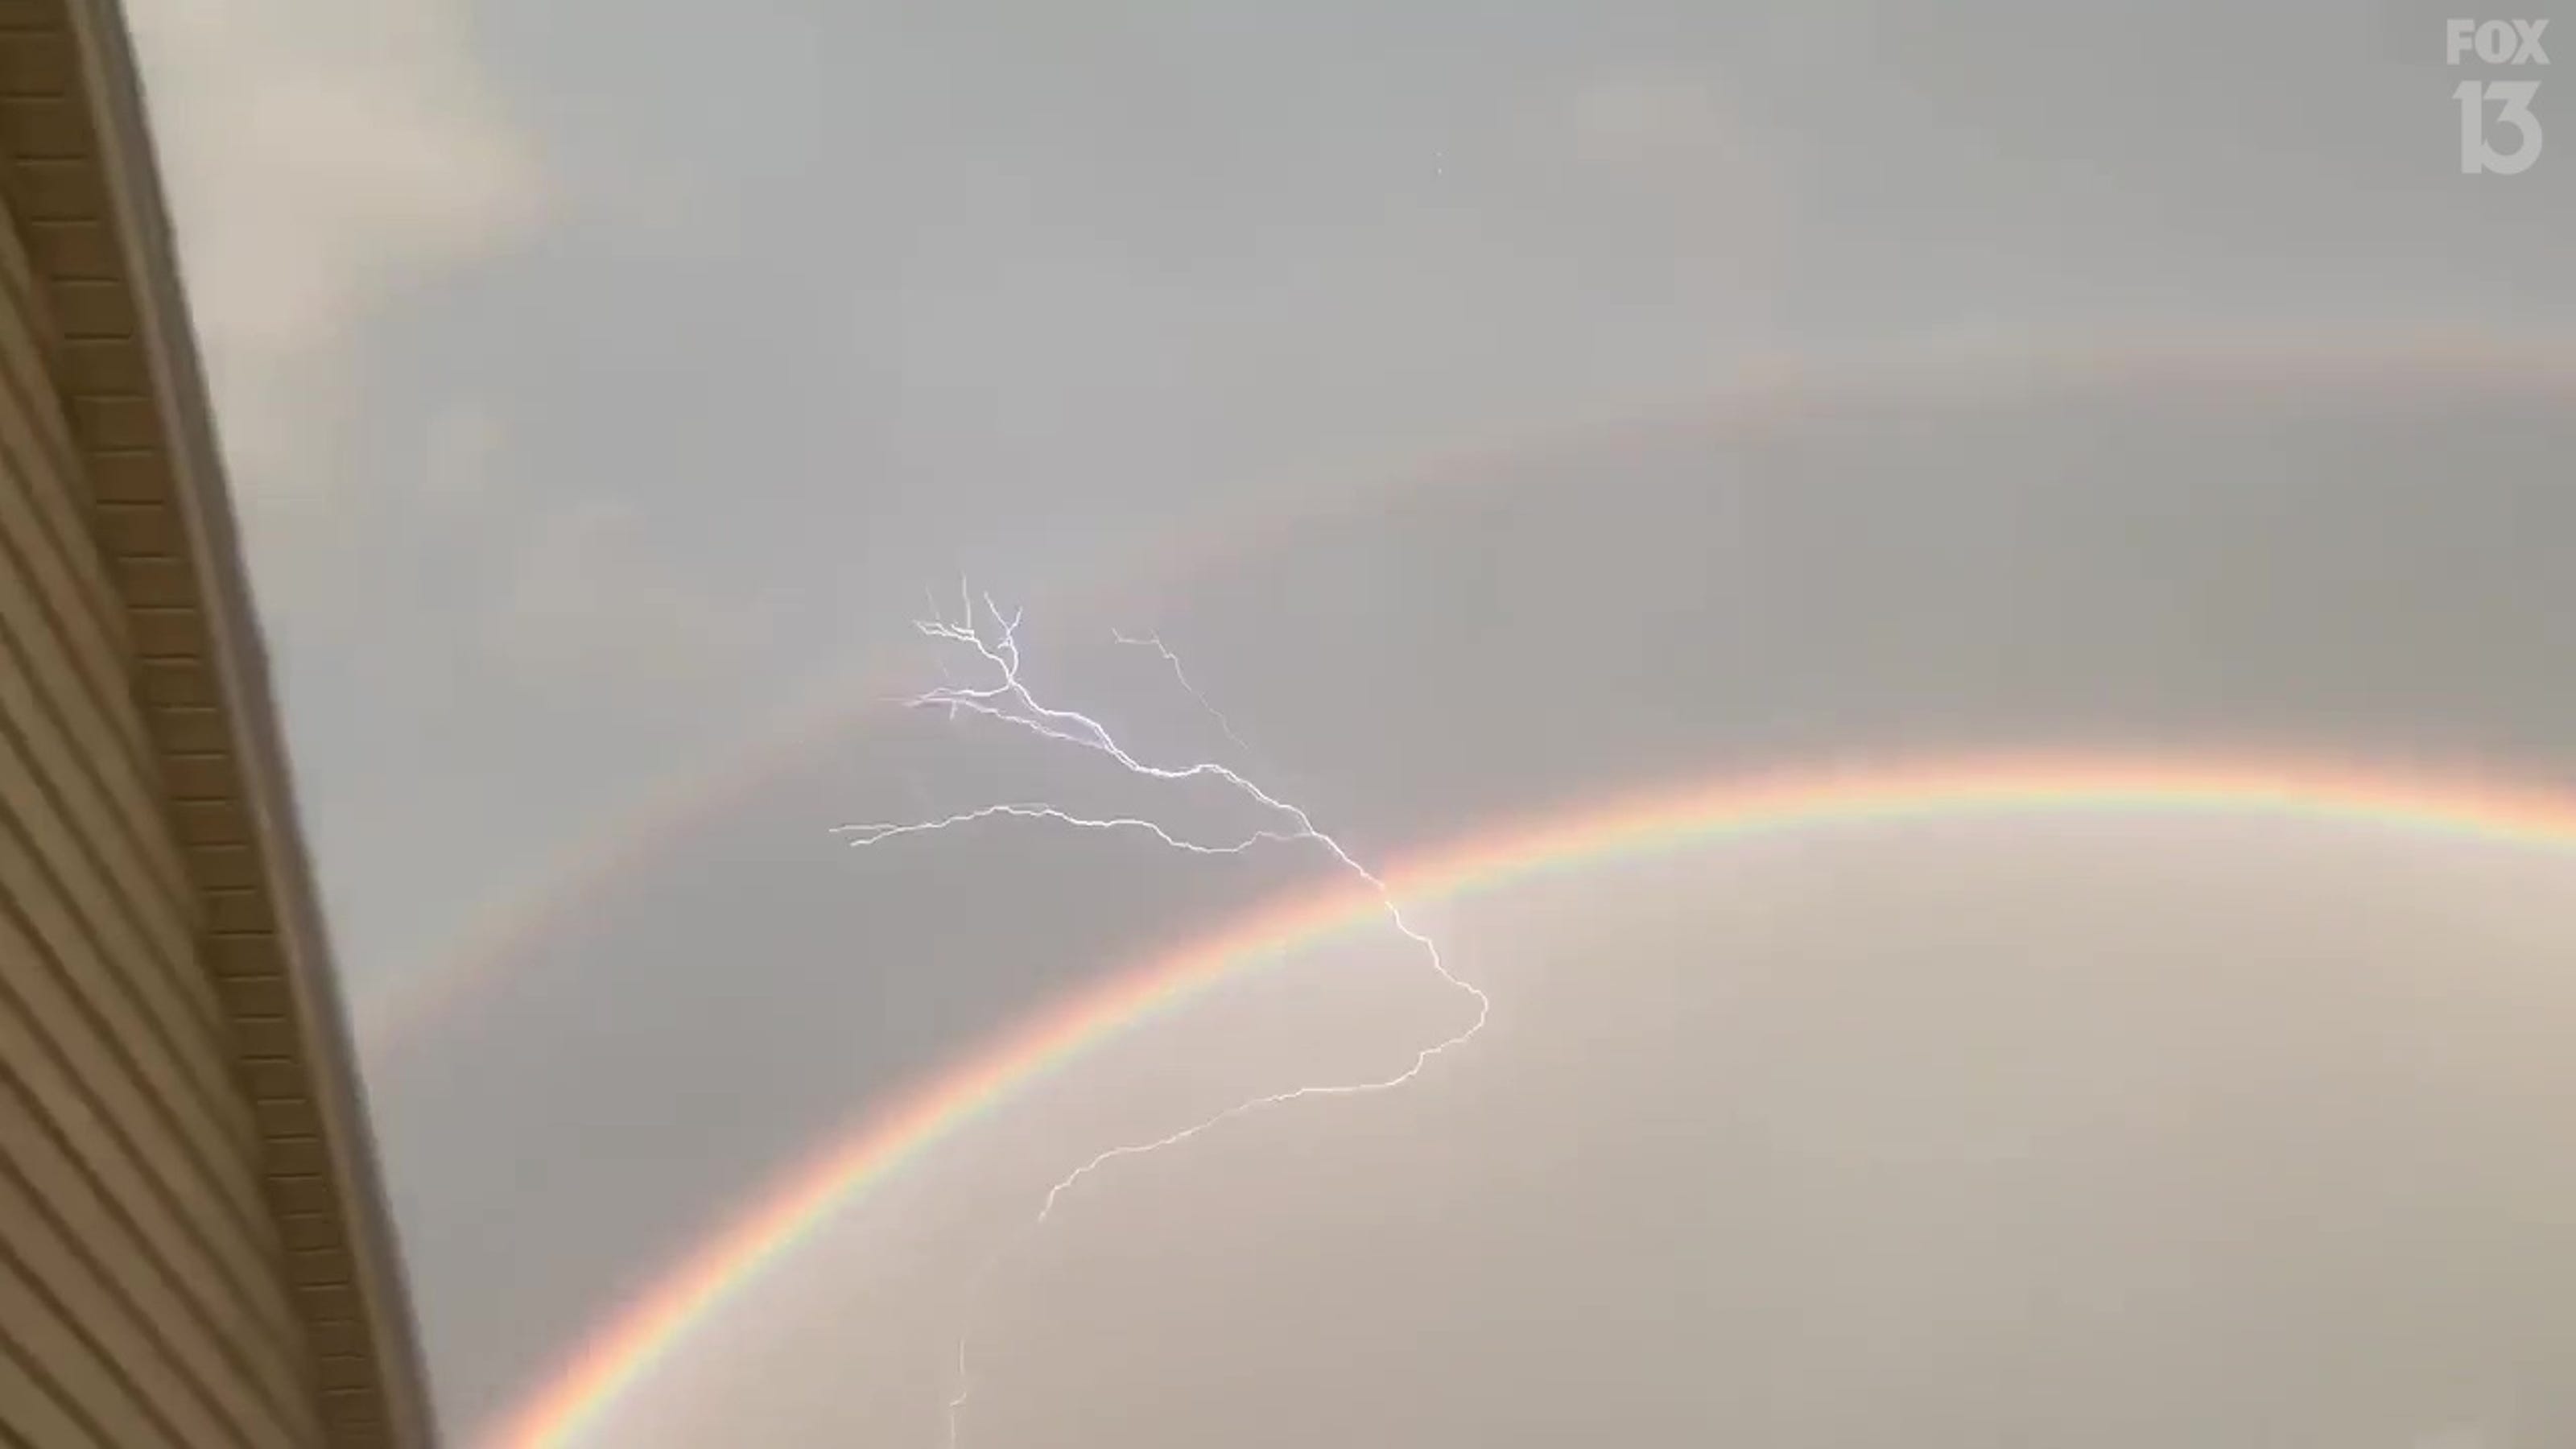 'Oh my gosh': It's a double rainbow with lightning